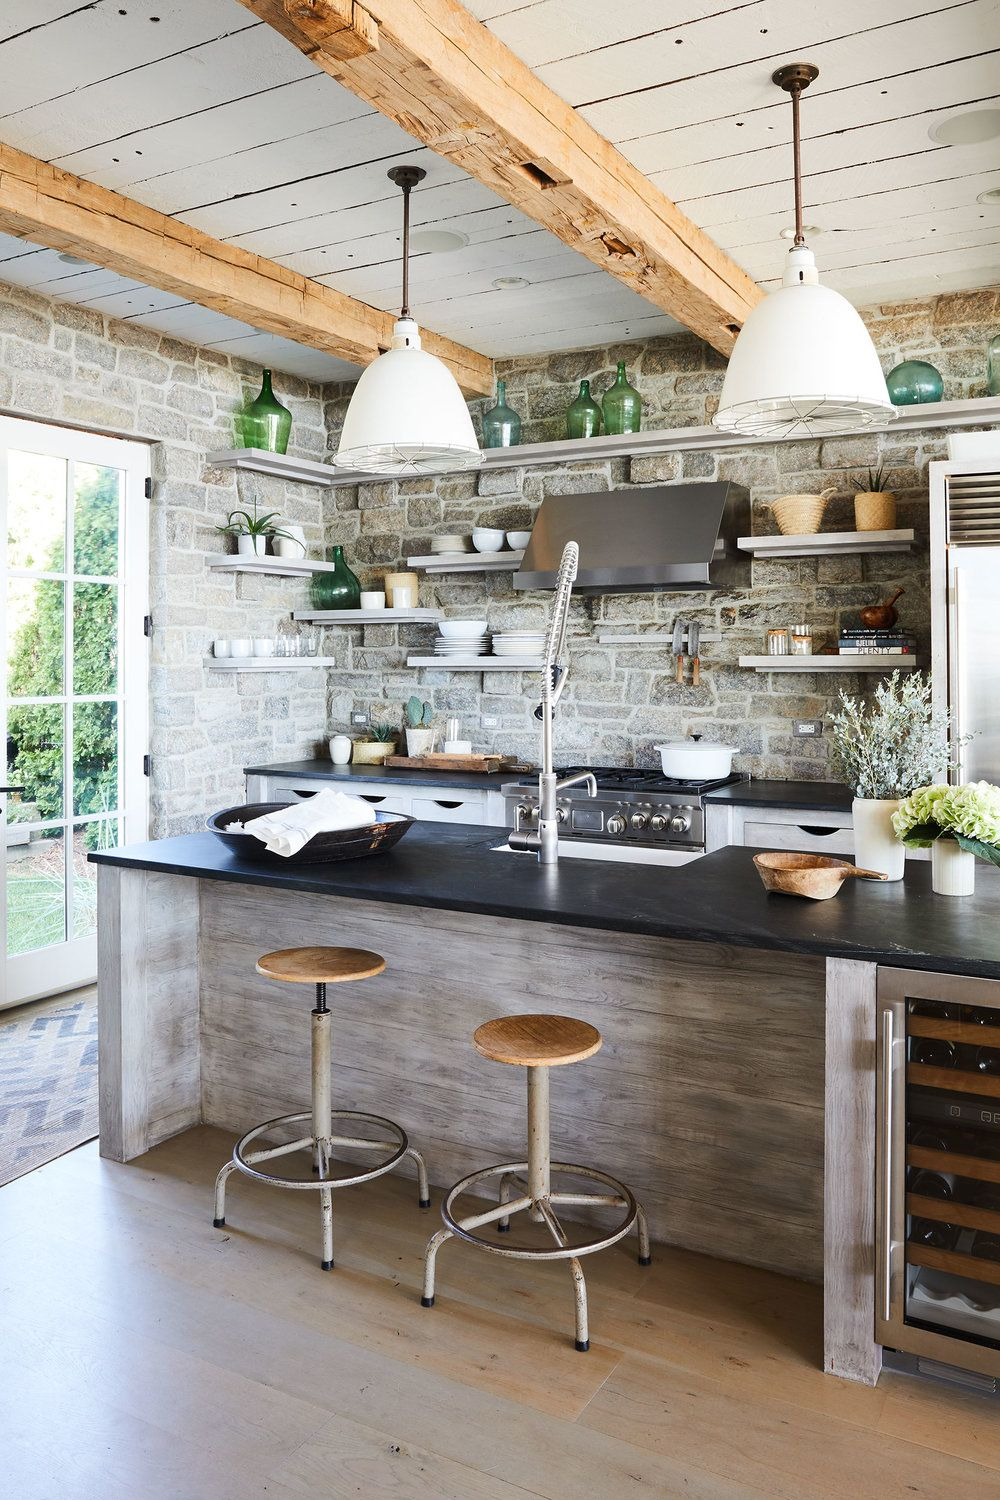 15 Best Rustic Kitchens , Modern Country Rustic Kitchen